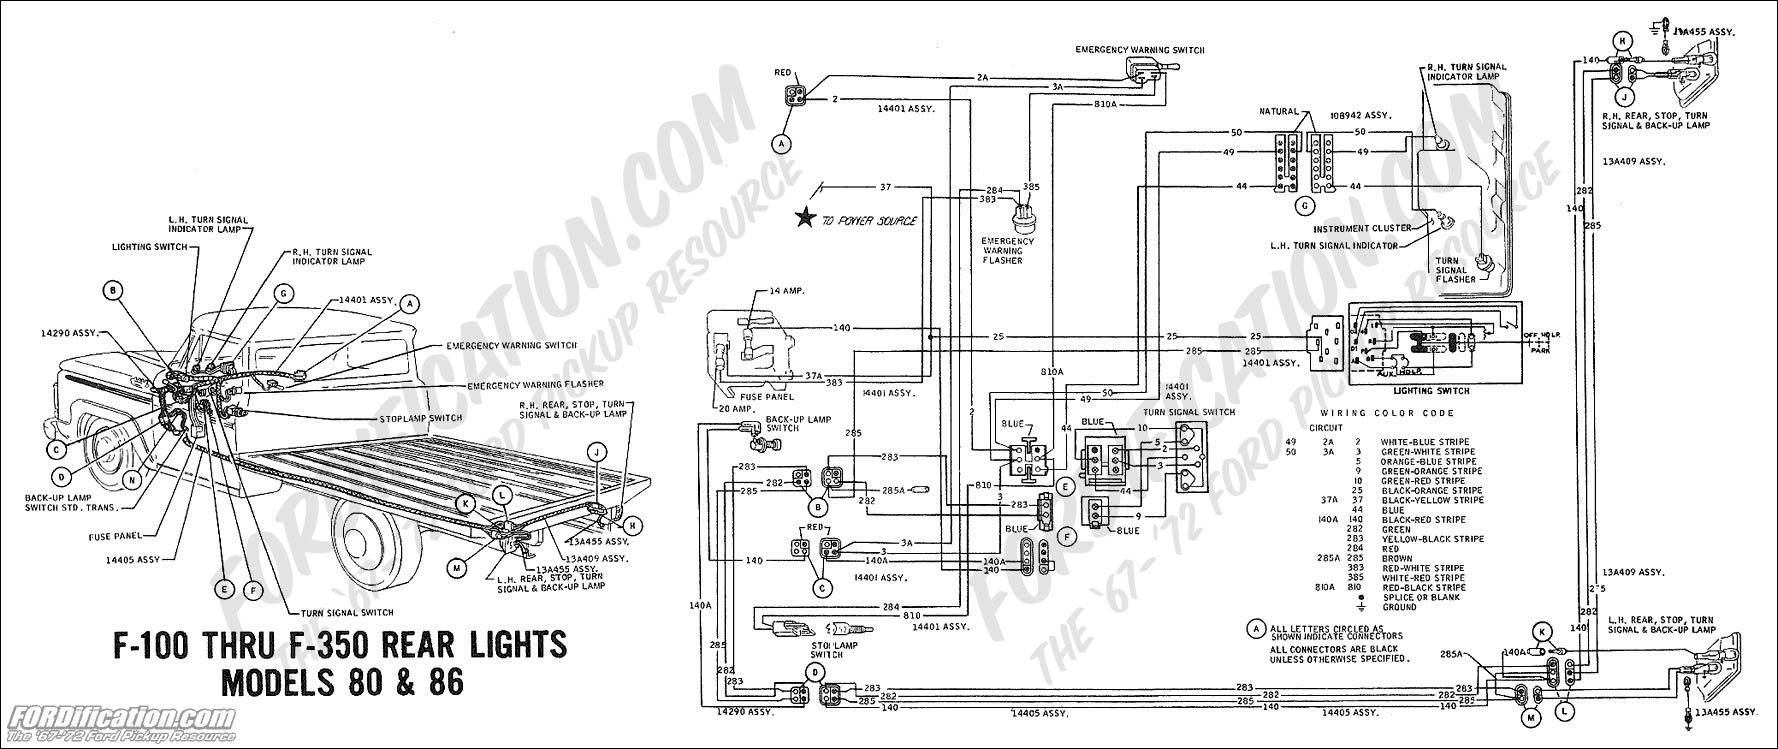 wiring_69rearlights mdls80 86 ford truck technical drawings and schematics section h wiring  at webbmarketing.co